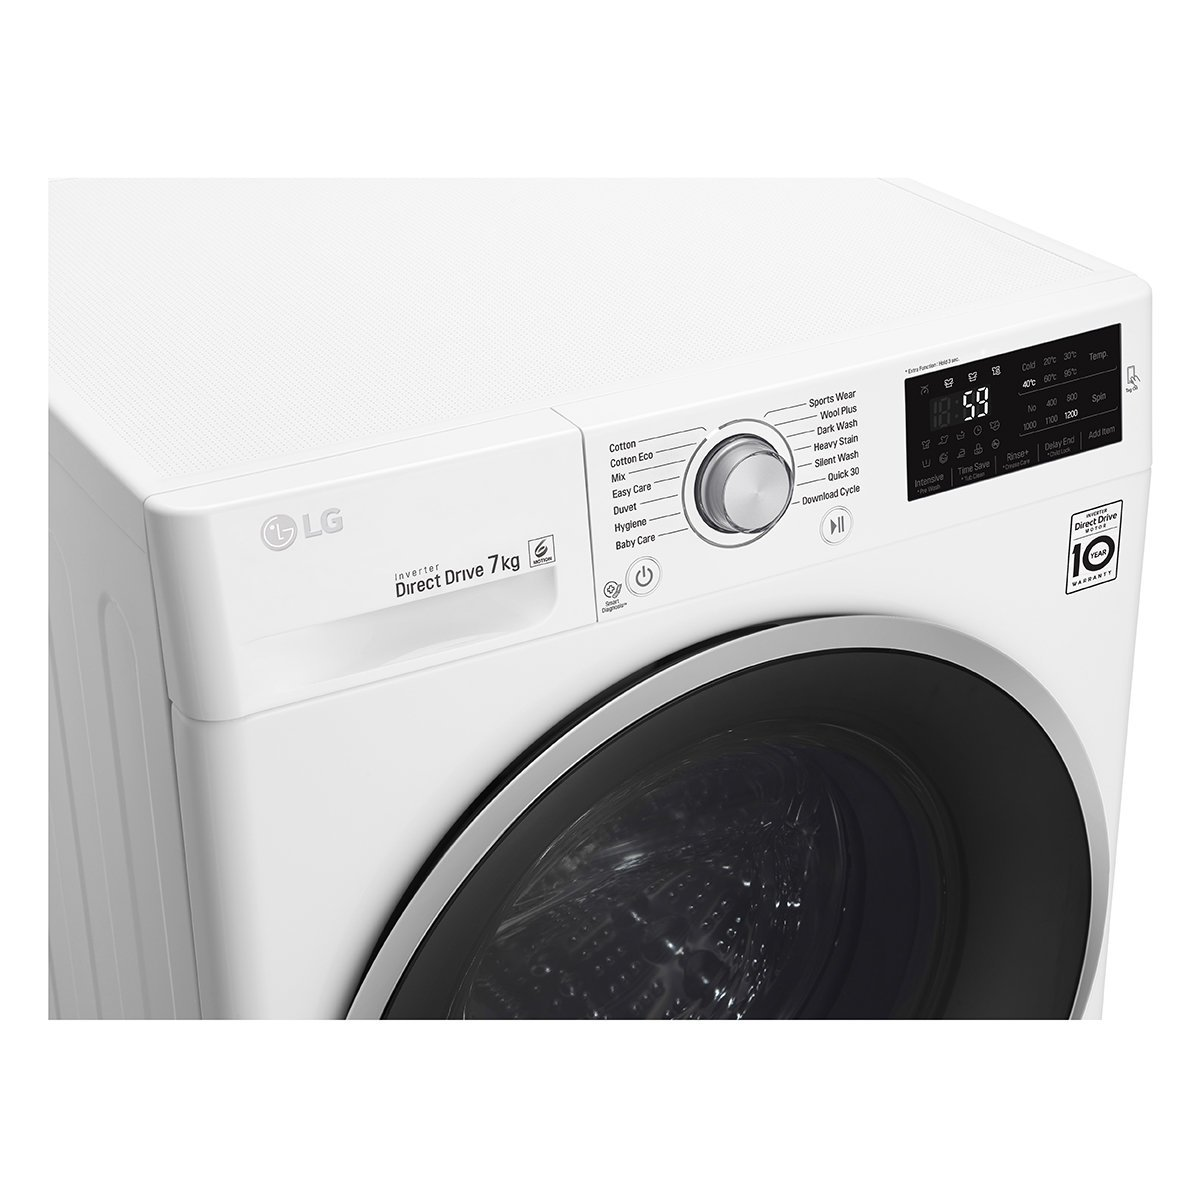 lg washing machine wd1207ncw review